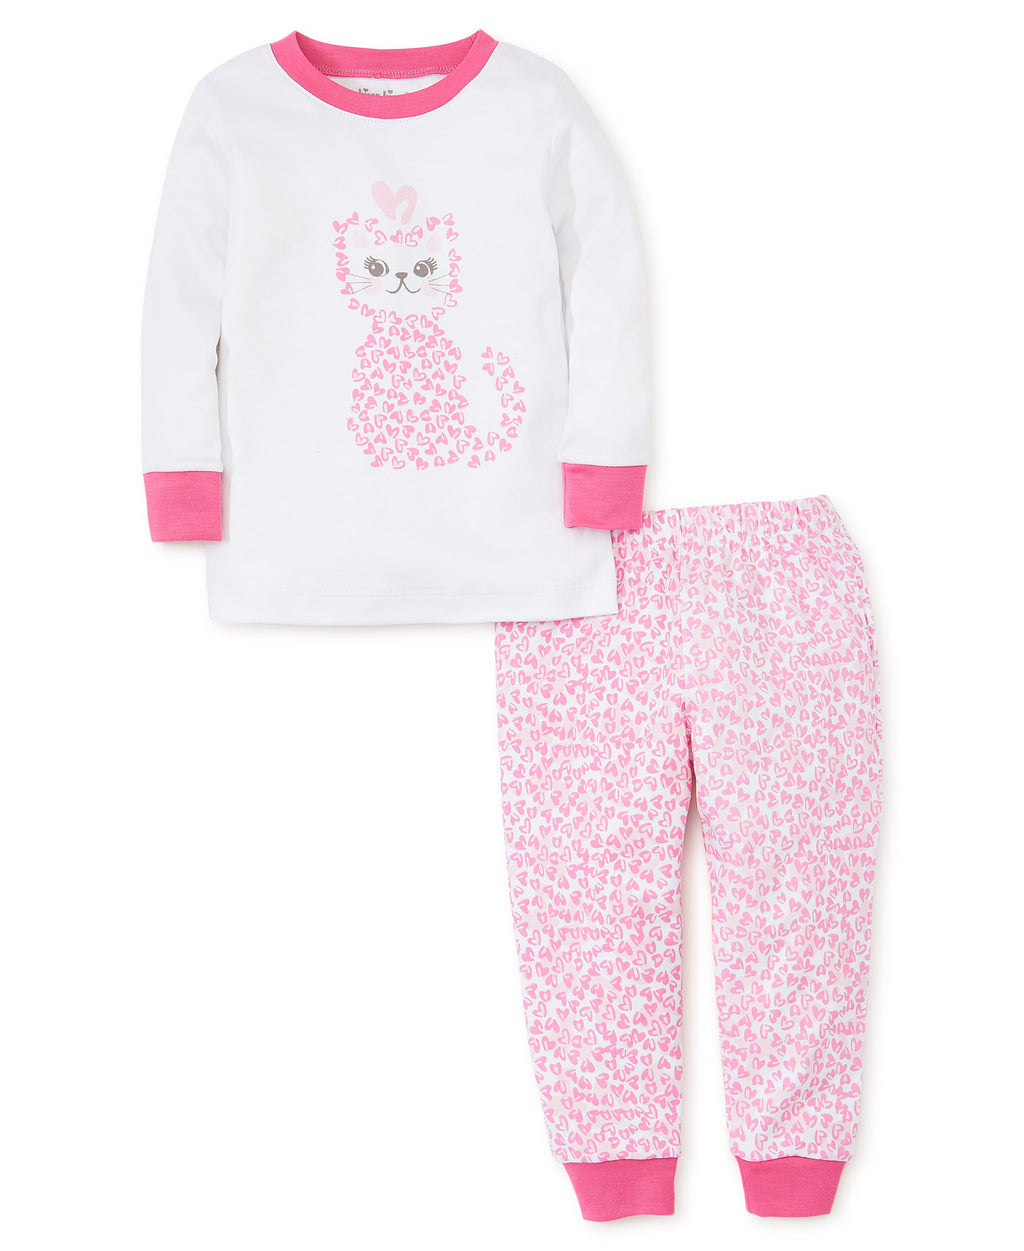 Cheetah Toddler Pajama Set